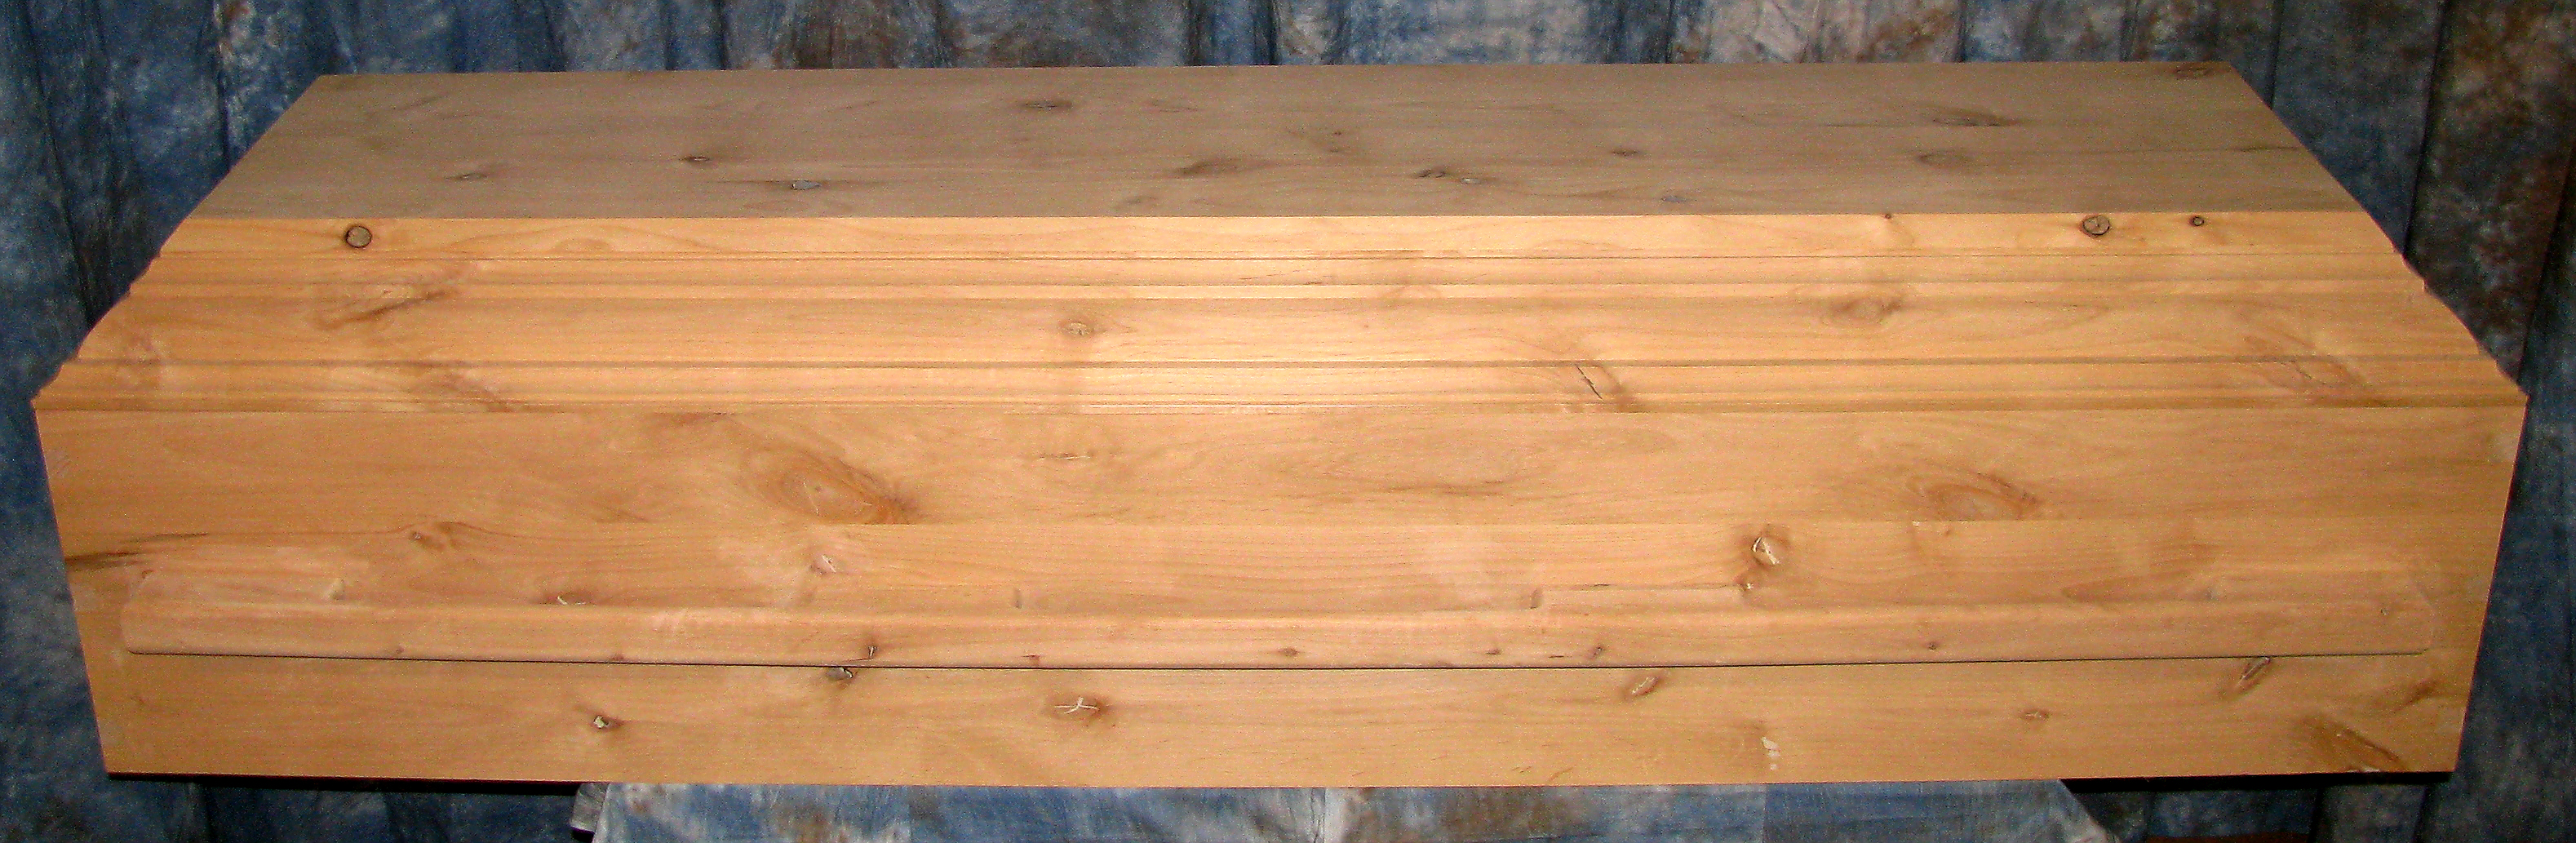 Old Wood Coffin http://develop.rancornews.com/1/old-wooden-casket